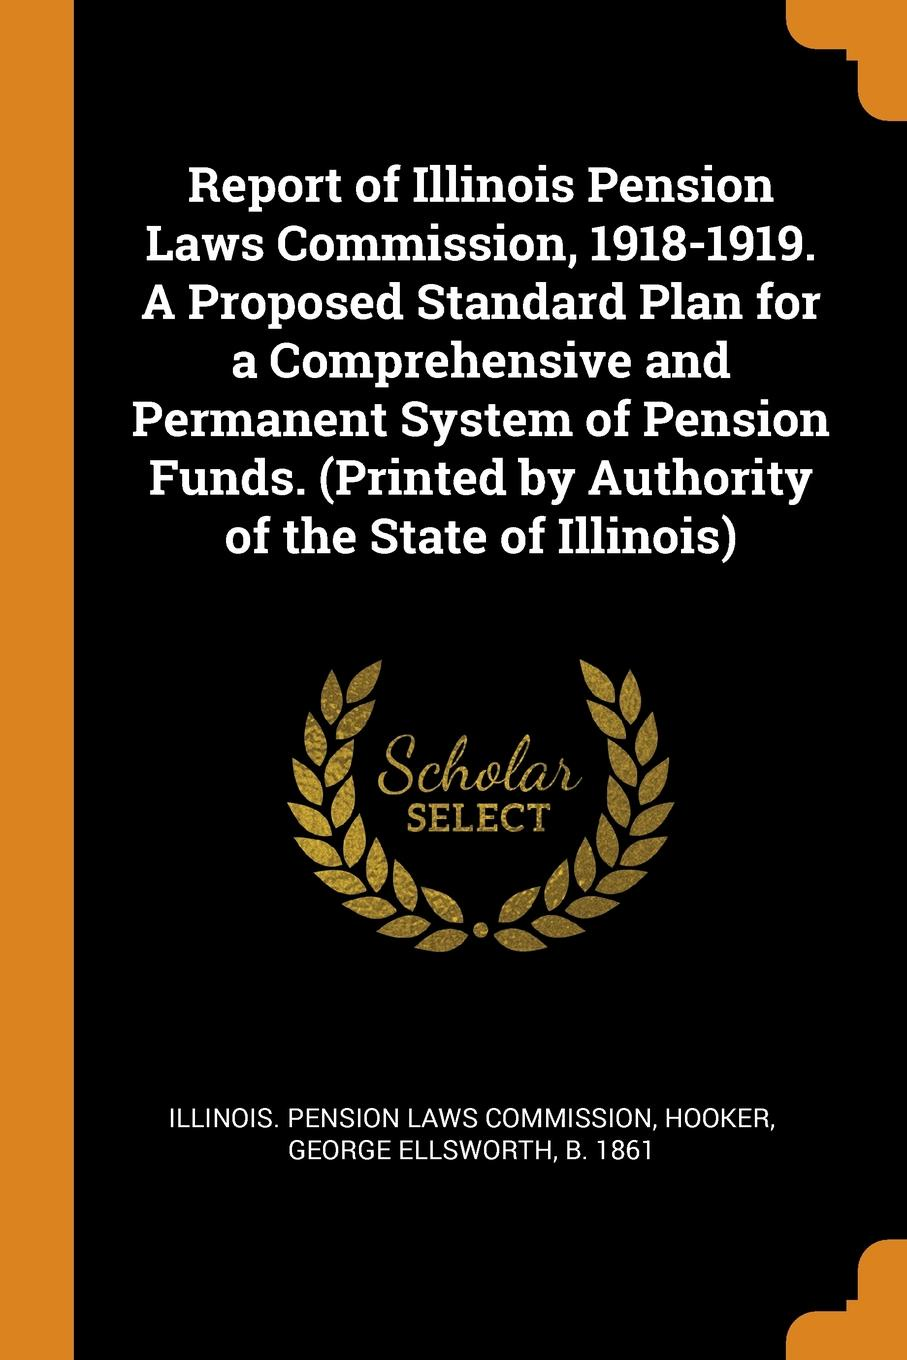 George Ellsworth Hooker Report of Illinois Pension Laws Commission, 1918-1919. A Proposed Standard Plan for a Comprehensive and Permanent System of Pension Funds. (Printed by Authority of the State of Illinois)